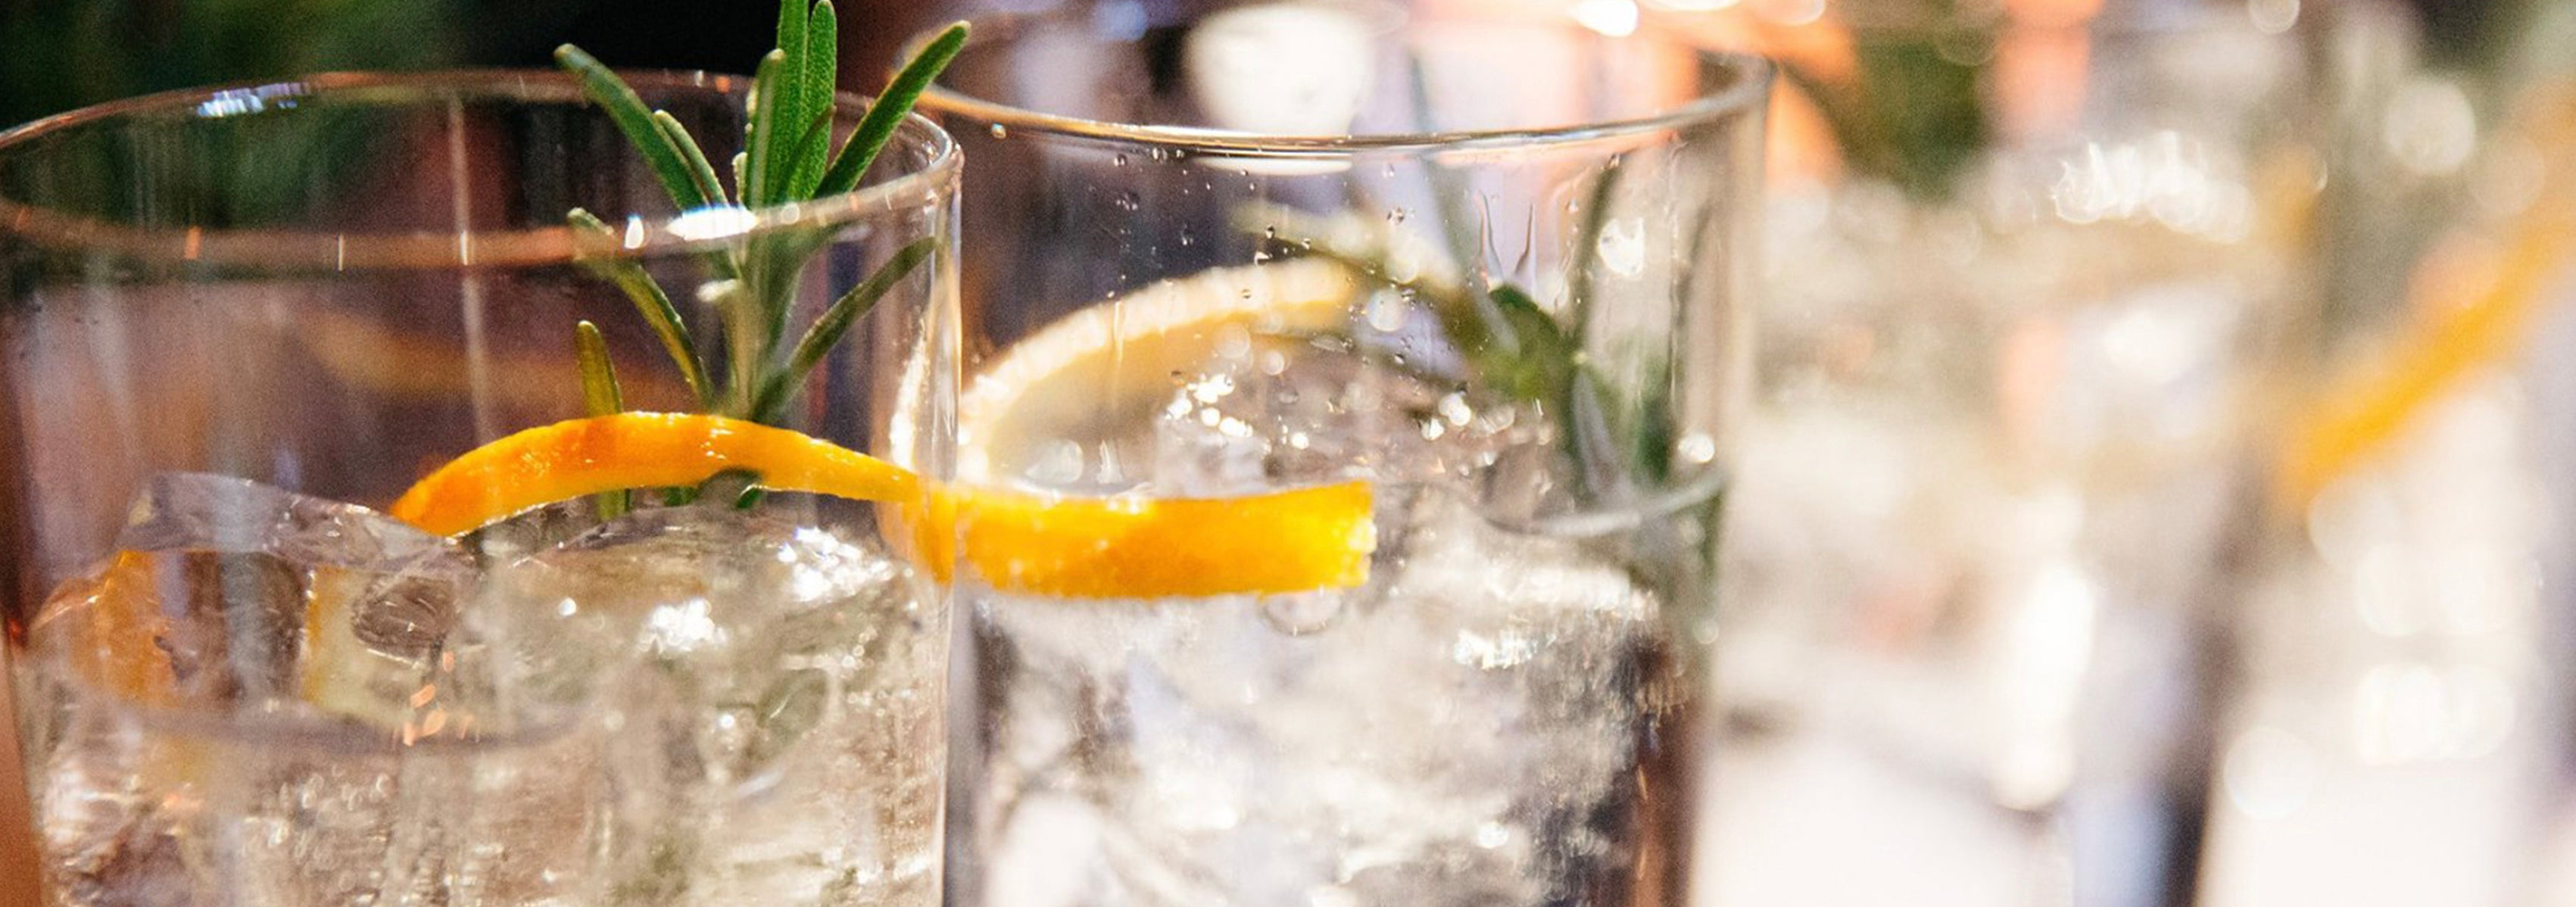 The Inebriated History of the Gin & Tonic